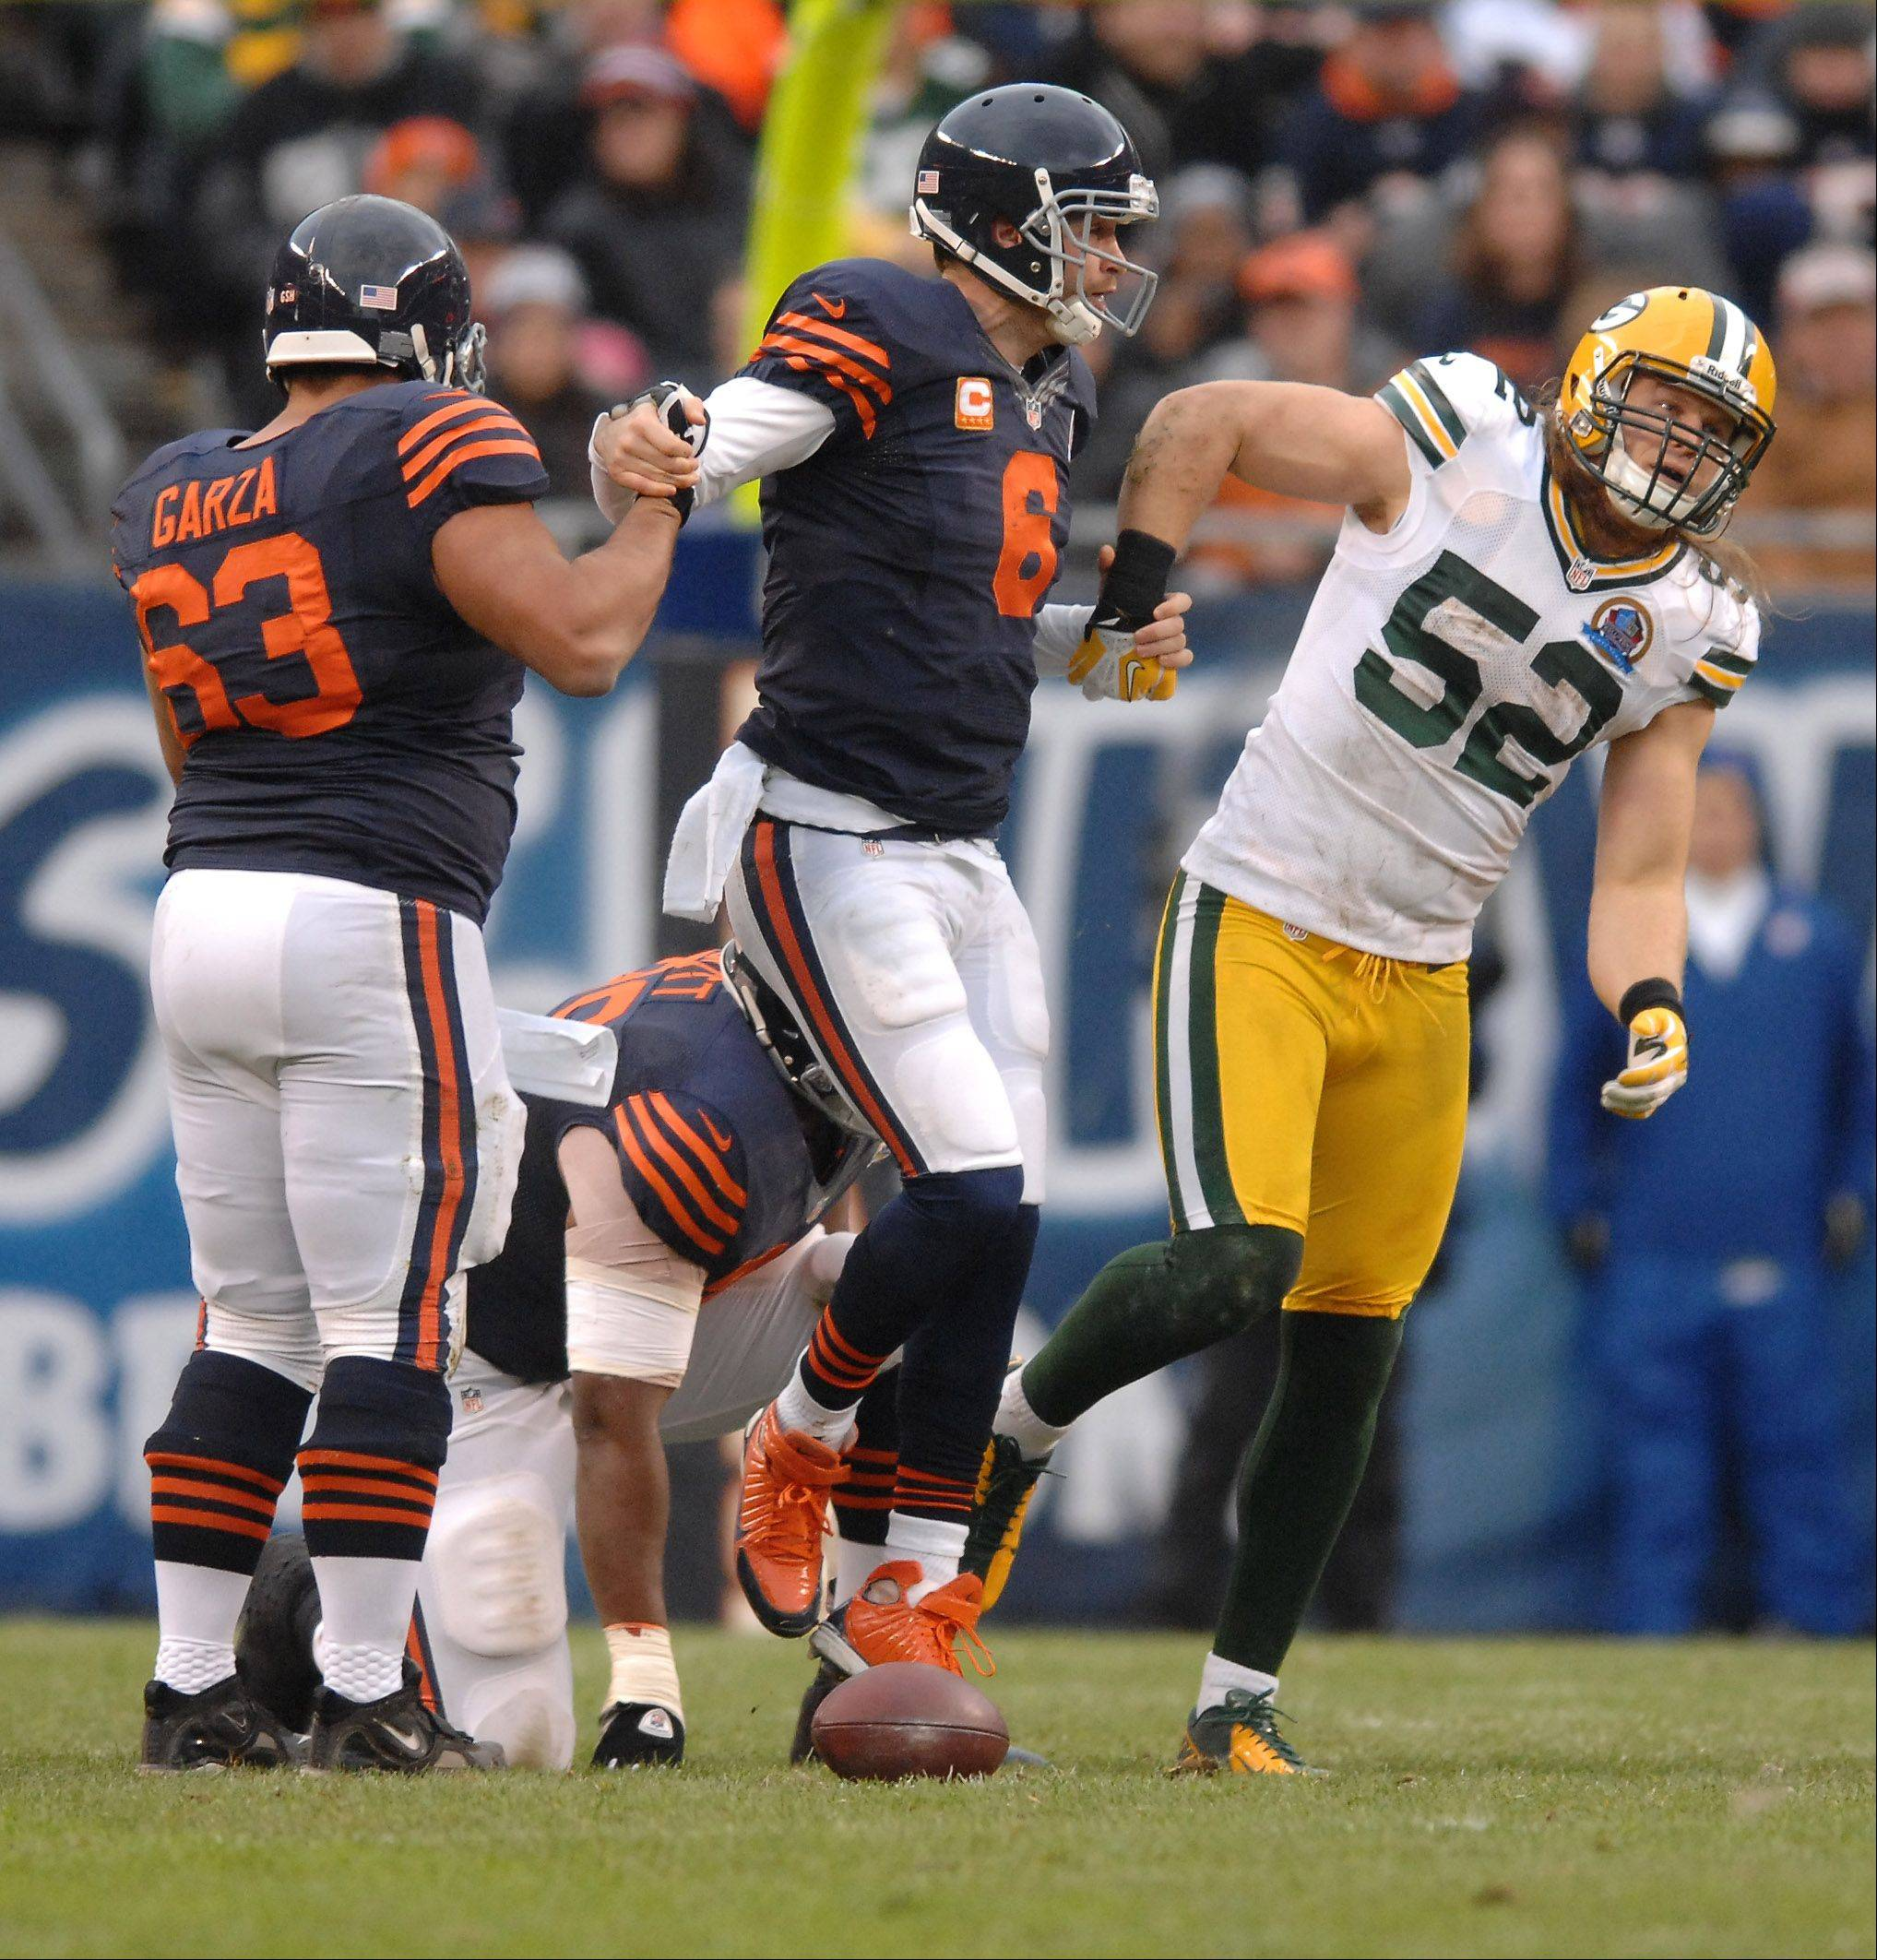 Green Bay Packers outside linebacker Clay Matthews (52) helps up Chicago Bears quarterback Jay Cutler (6) after a sack during Sunday's game at Soldier Field in Chicago.